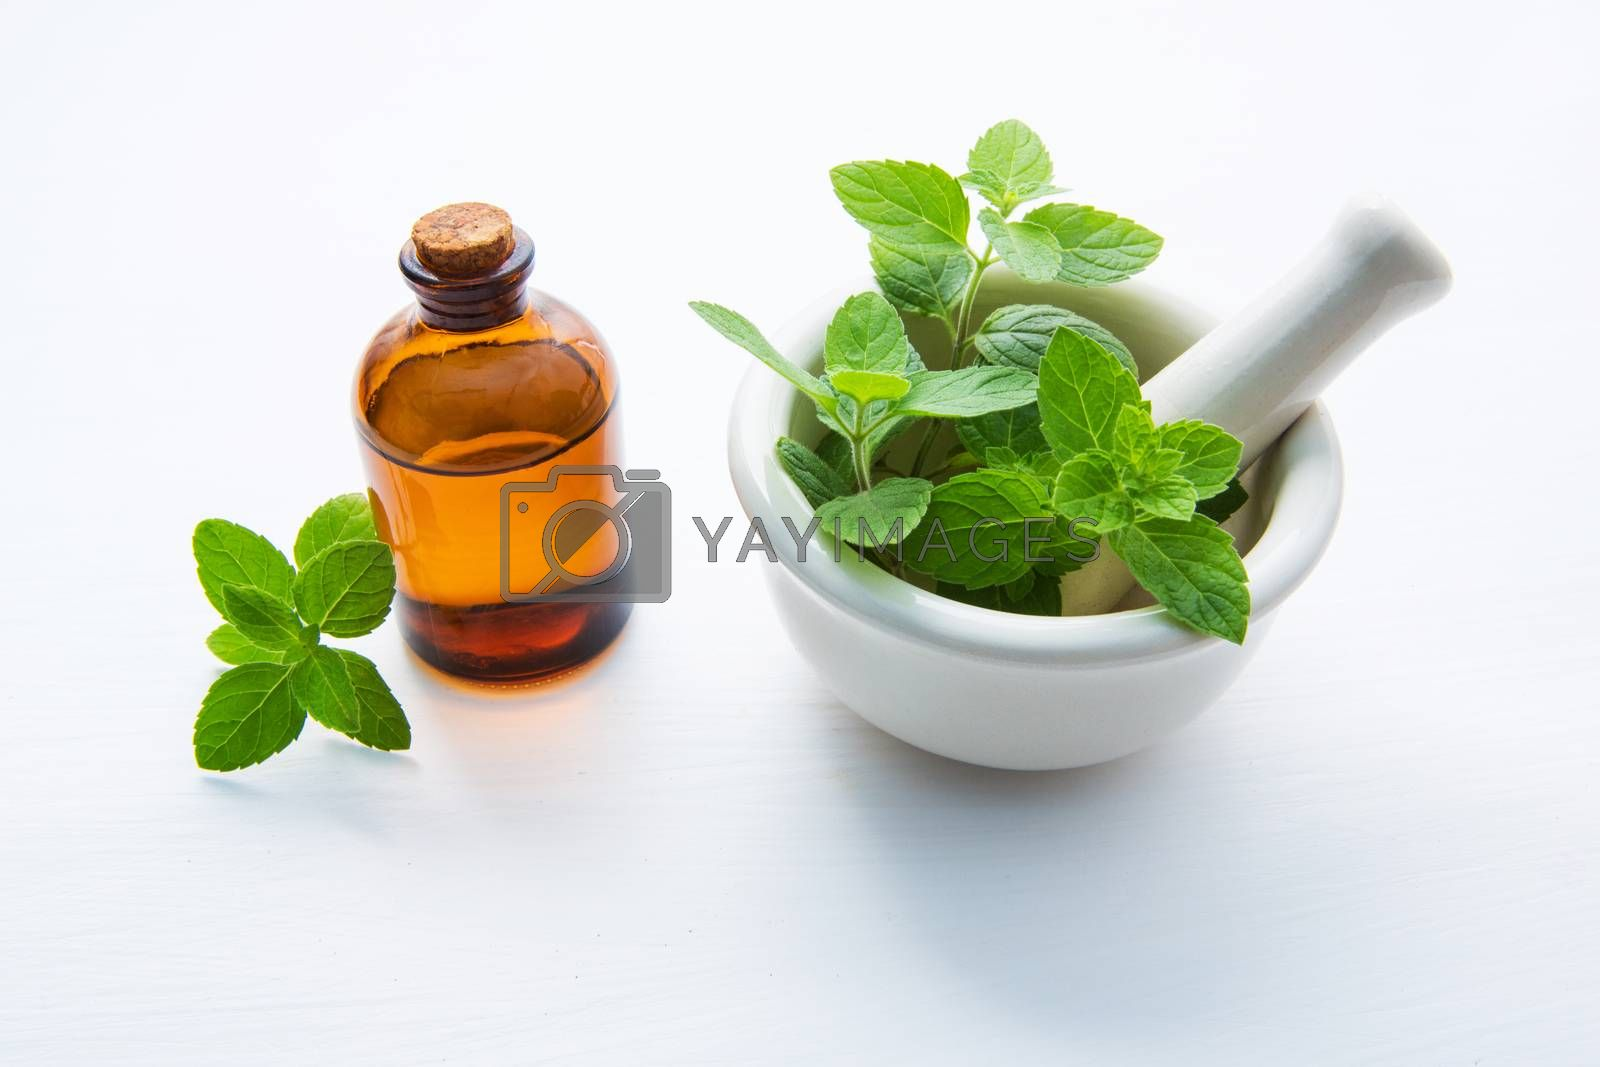 Natural Mint Essential Oil in a Glass Bottle with Fresh Mint Lea by Bowonpat